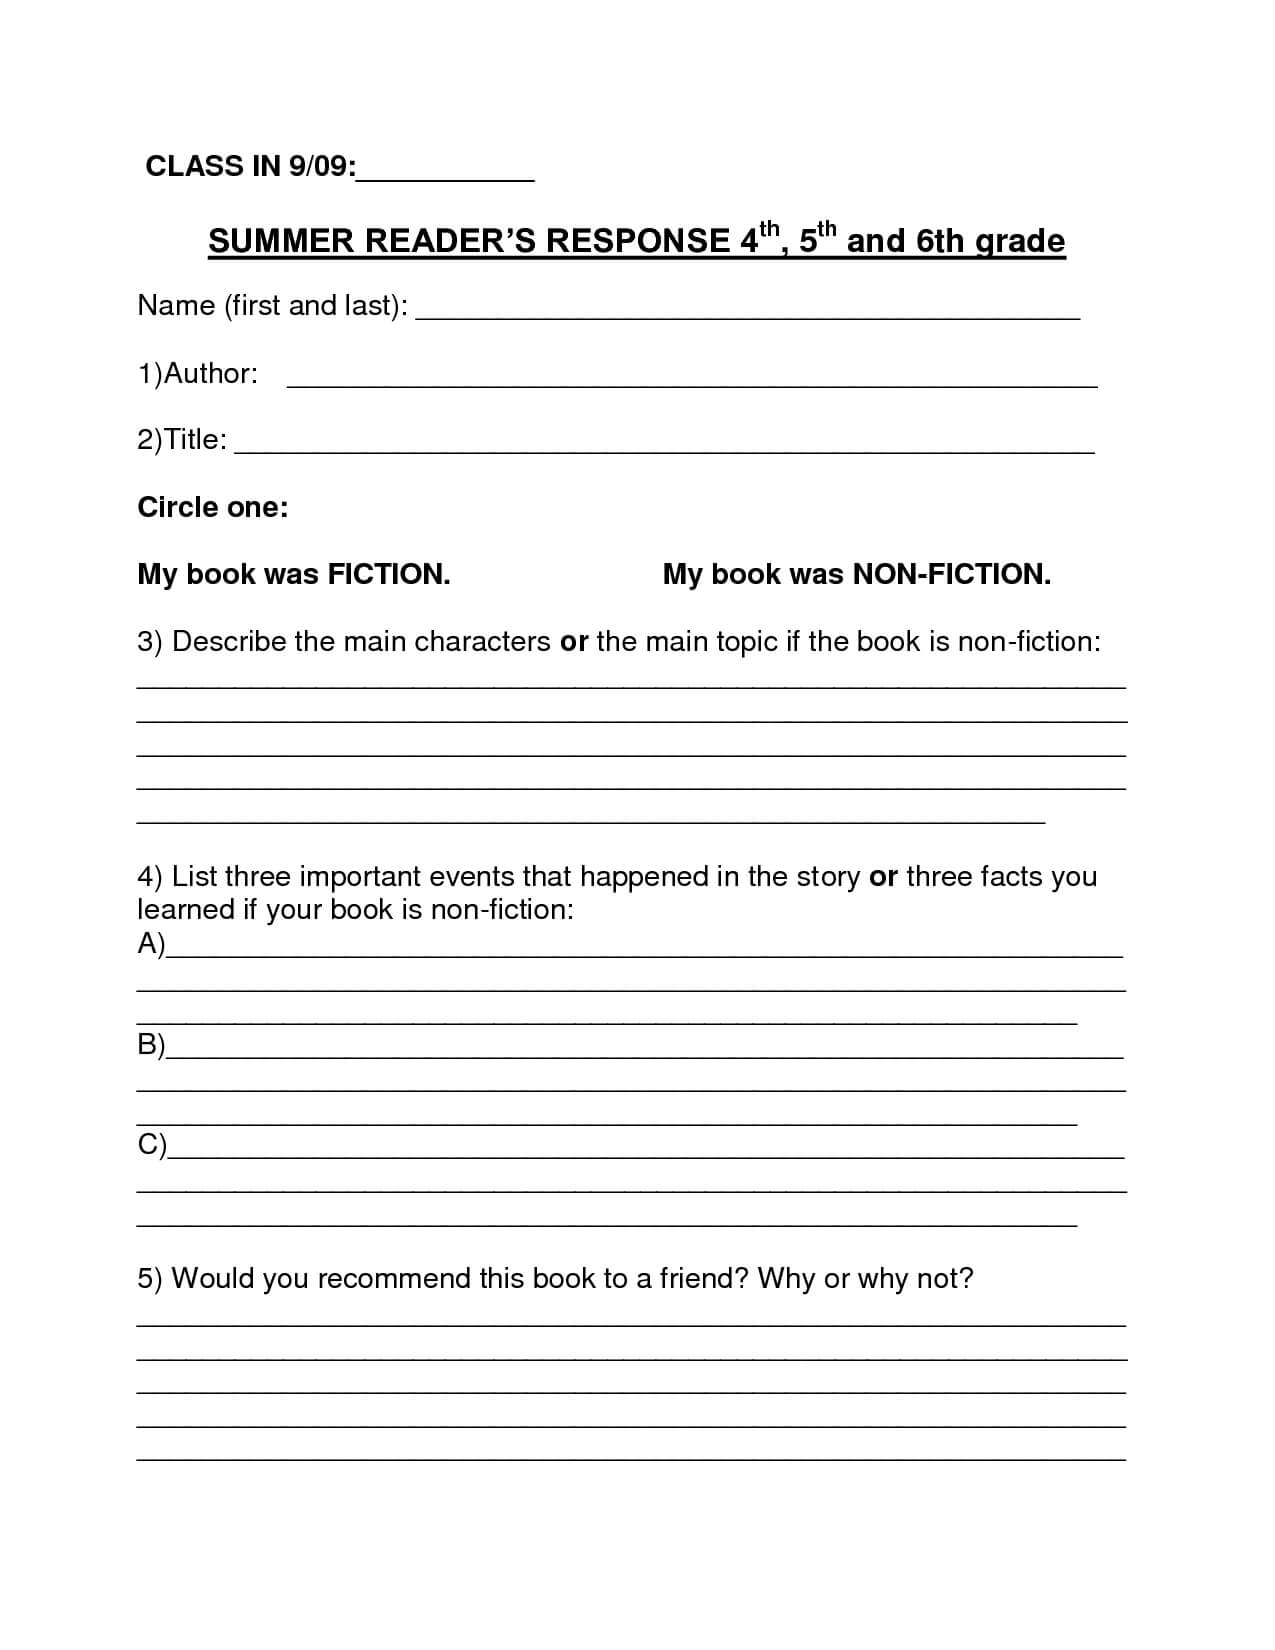 Book Report Template | Summer Book Report 4Th  6Th Grade Regarding Book Report Template 4Th Grade